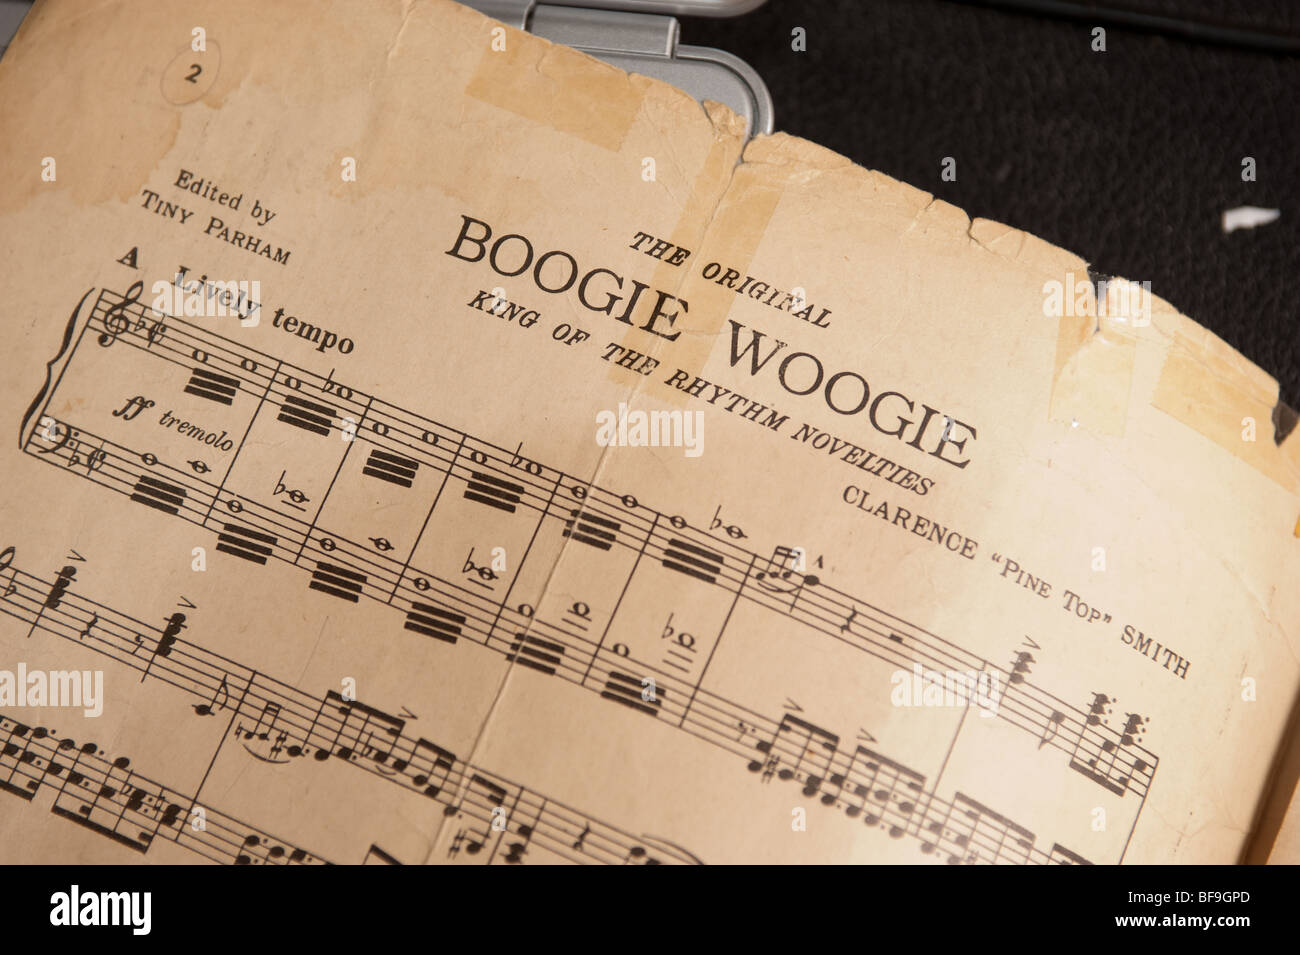 Boogie music stock photos boogie music stock images alamy